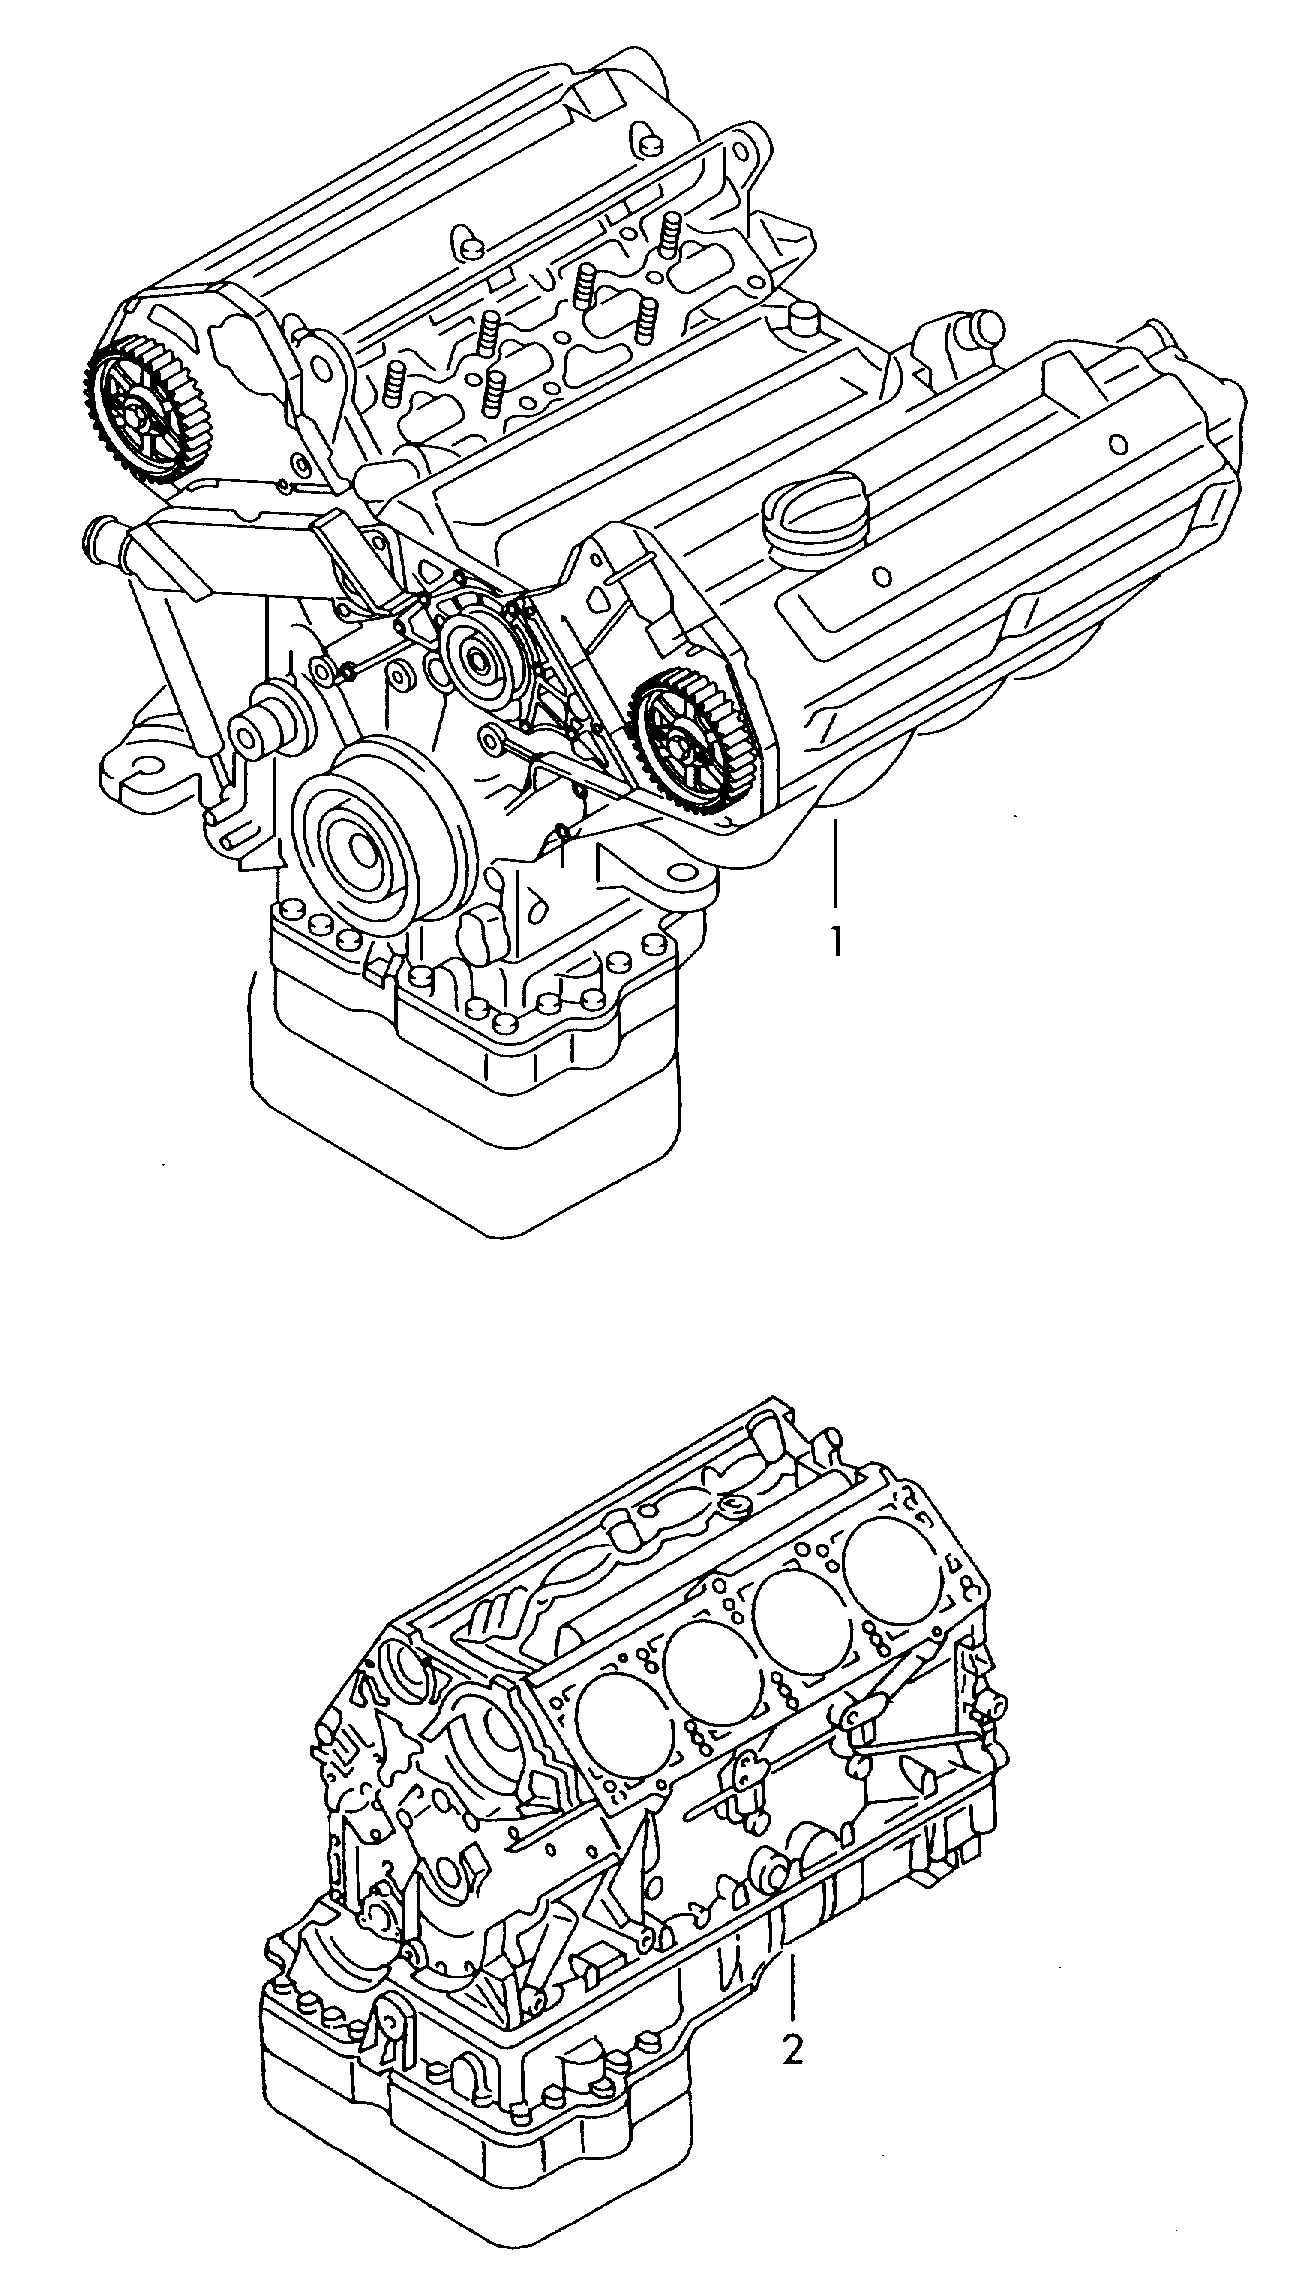 454 engine block specifications